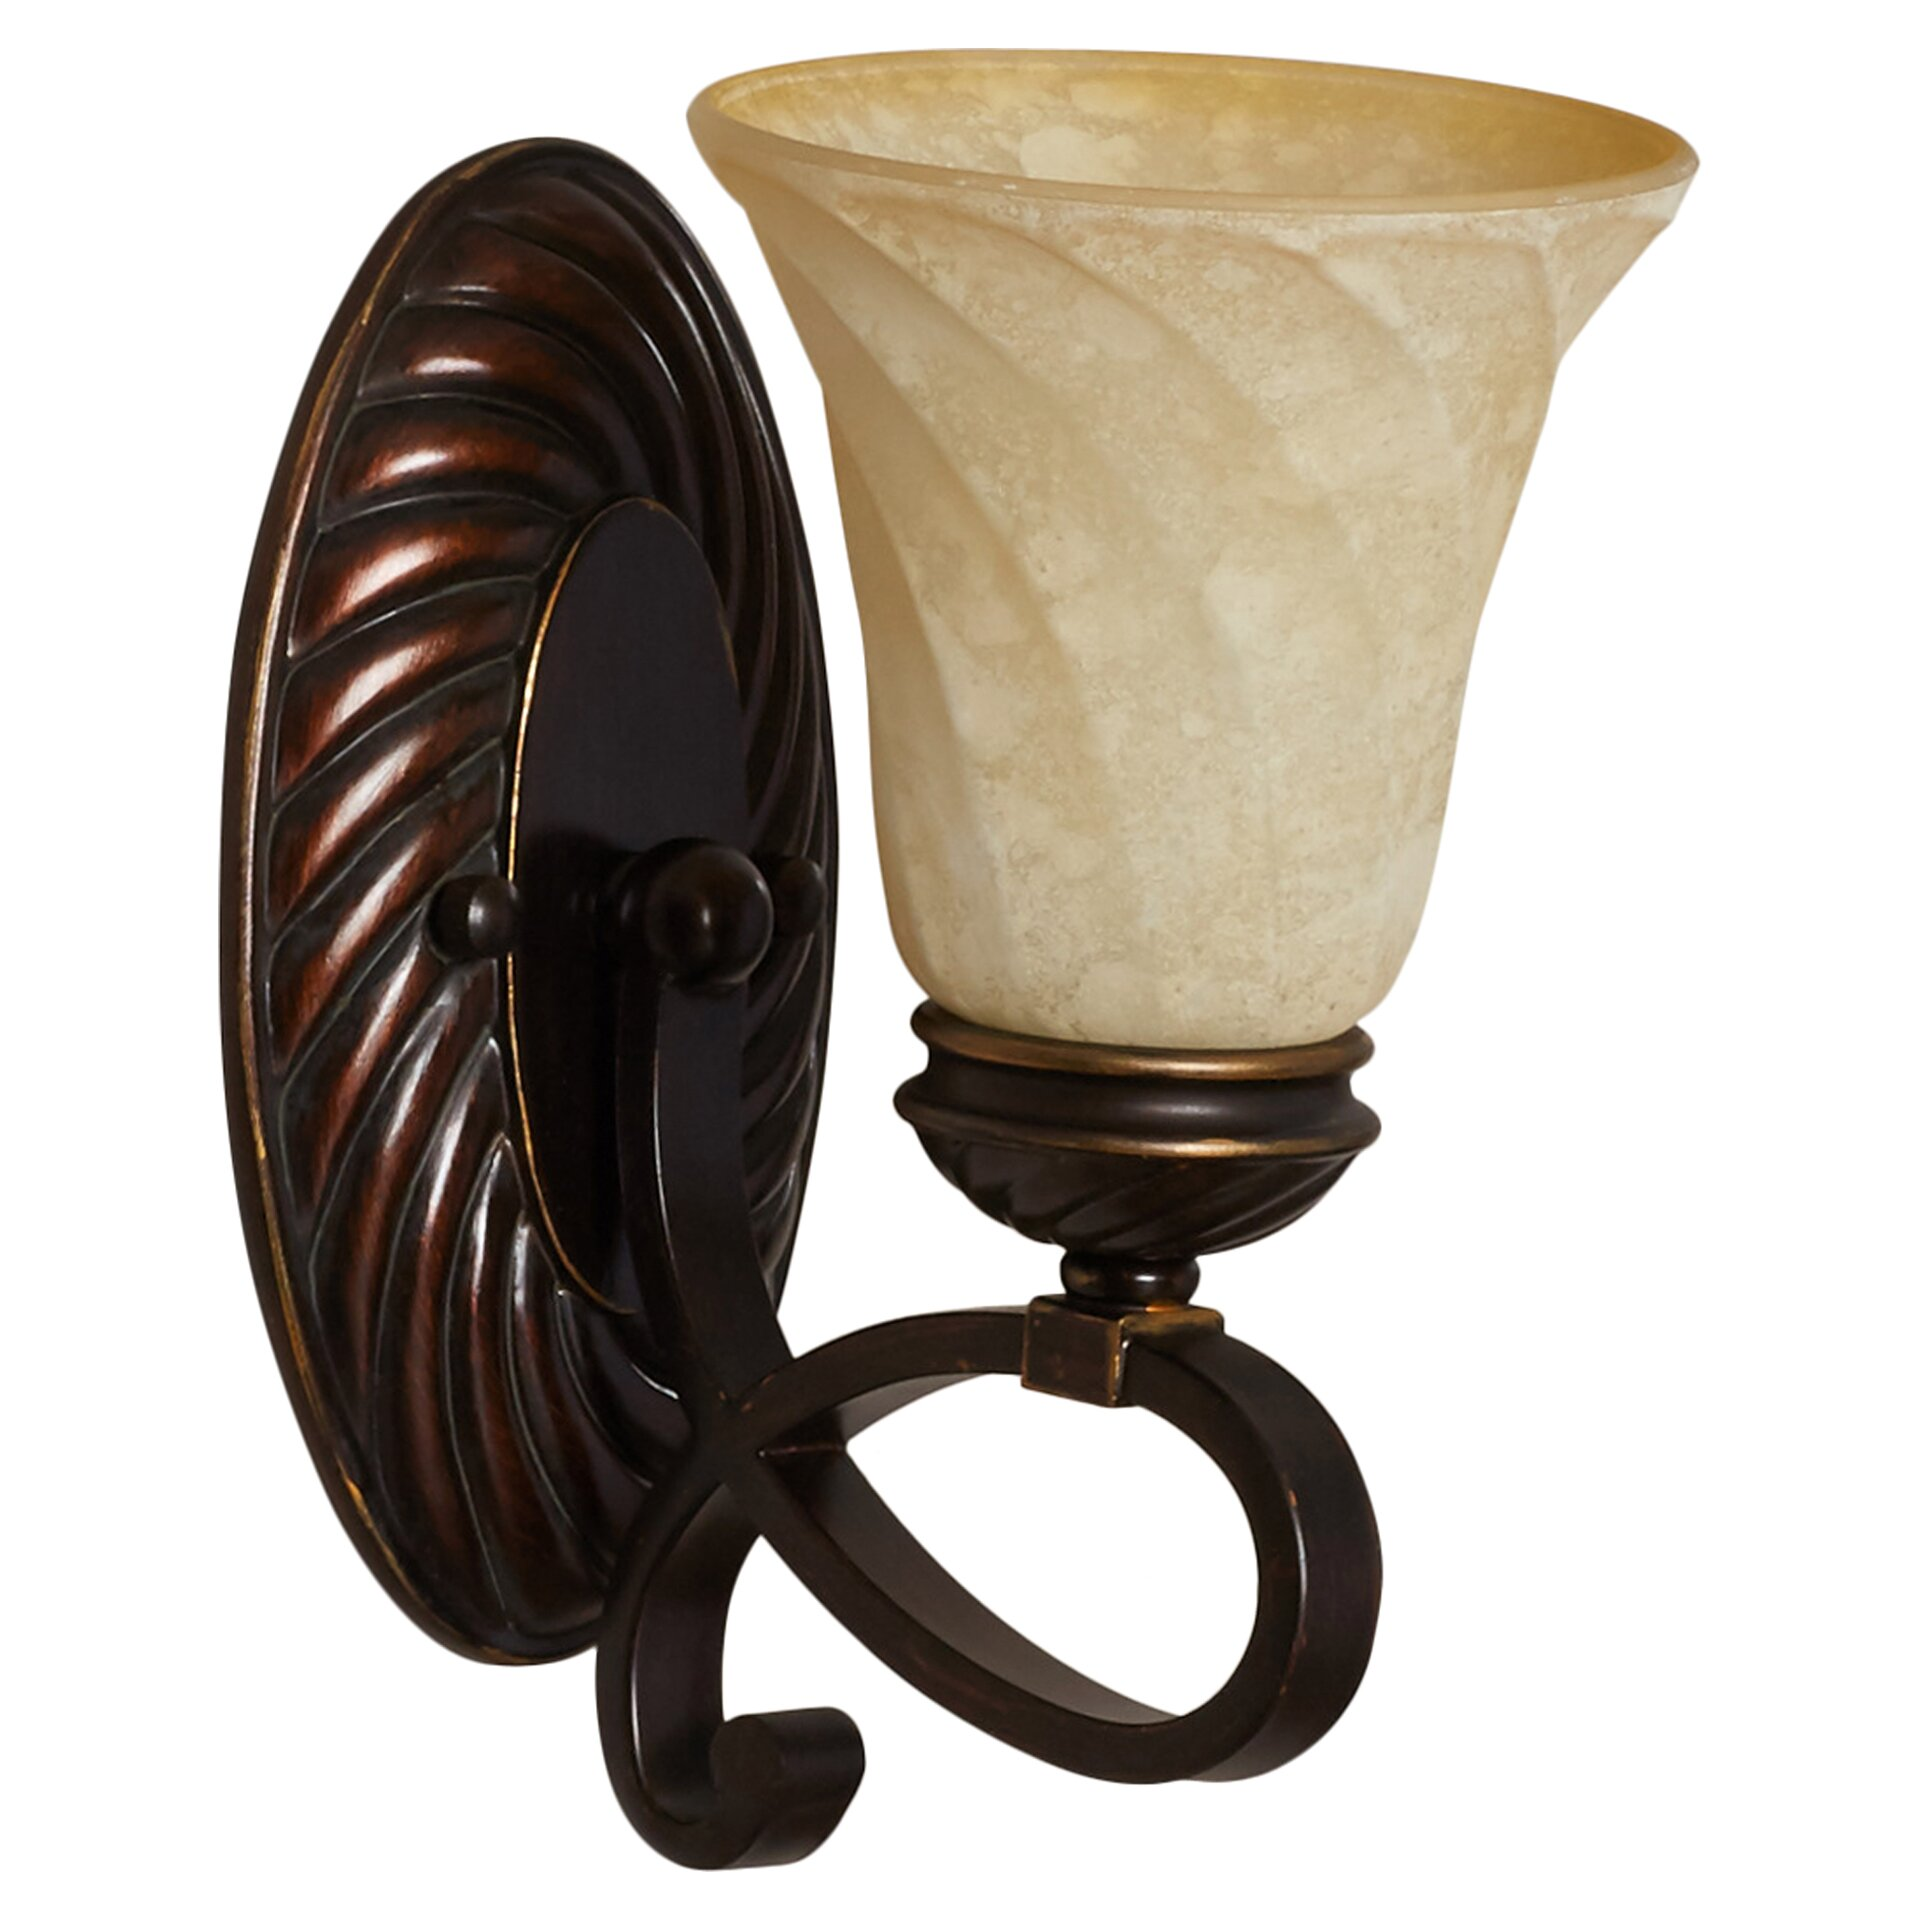 Wall Sconce With Magnifying Glass : Darby Home Co Hoopeston 1 Light Wall Sconce & Reviews Wayfair